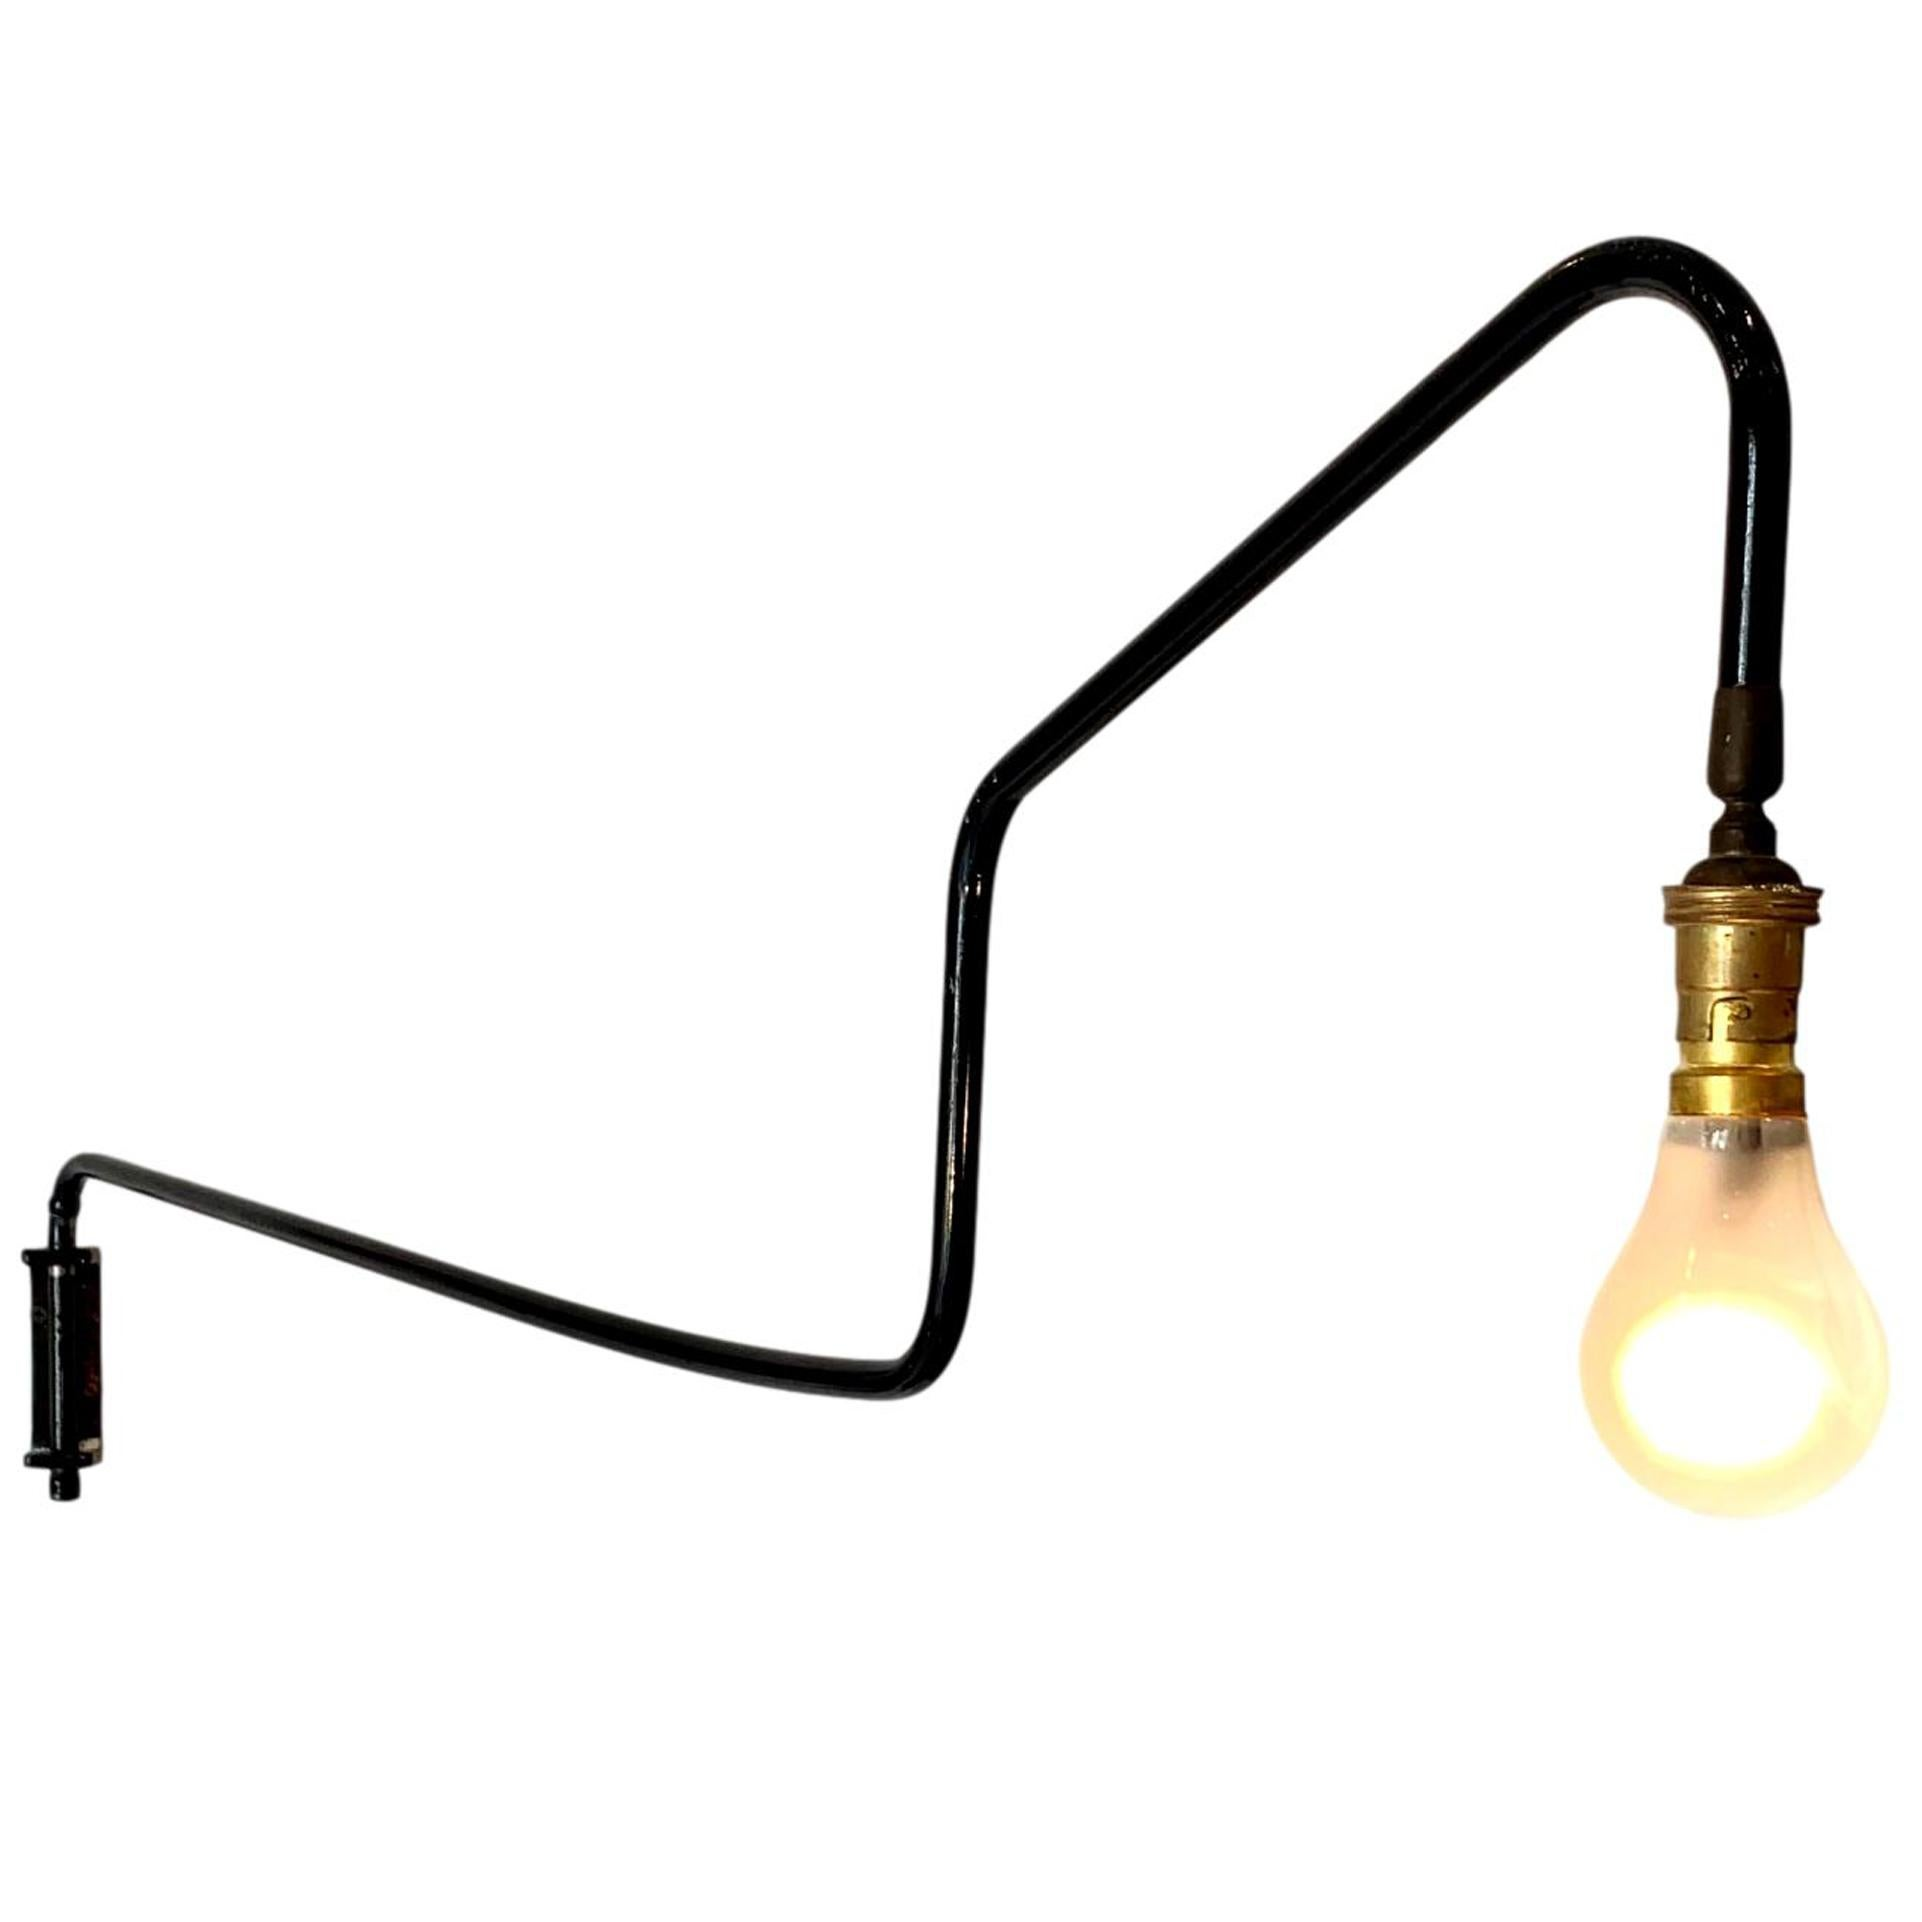 French Swing Arm Wall Light